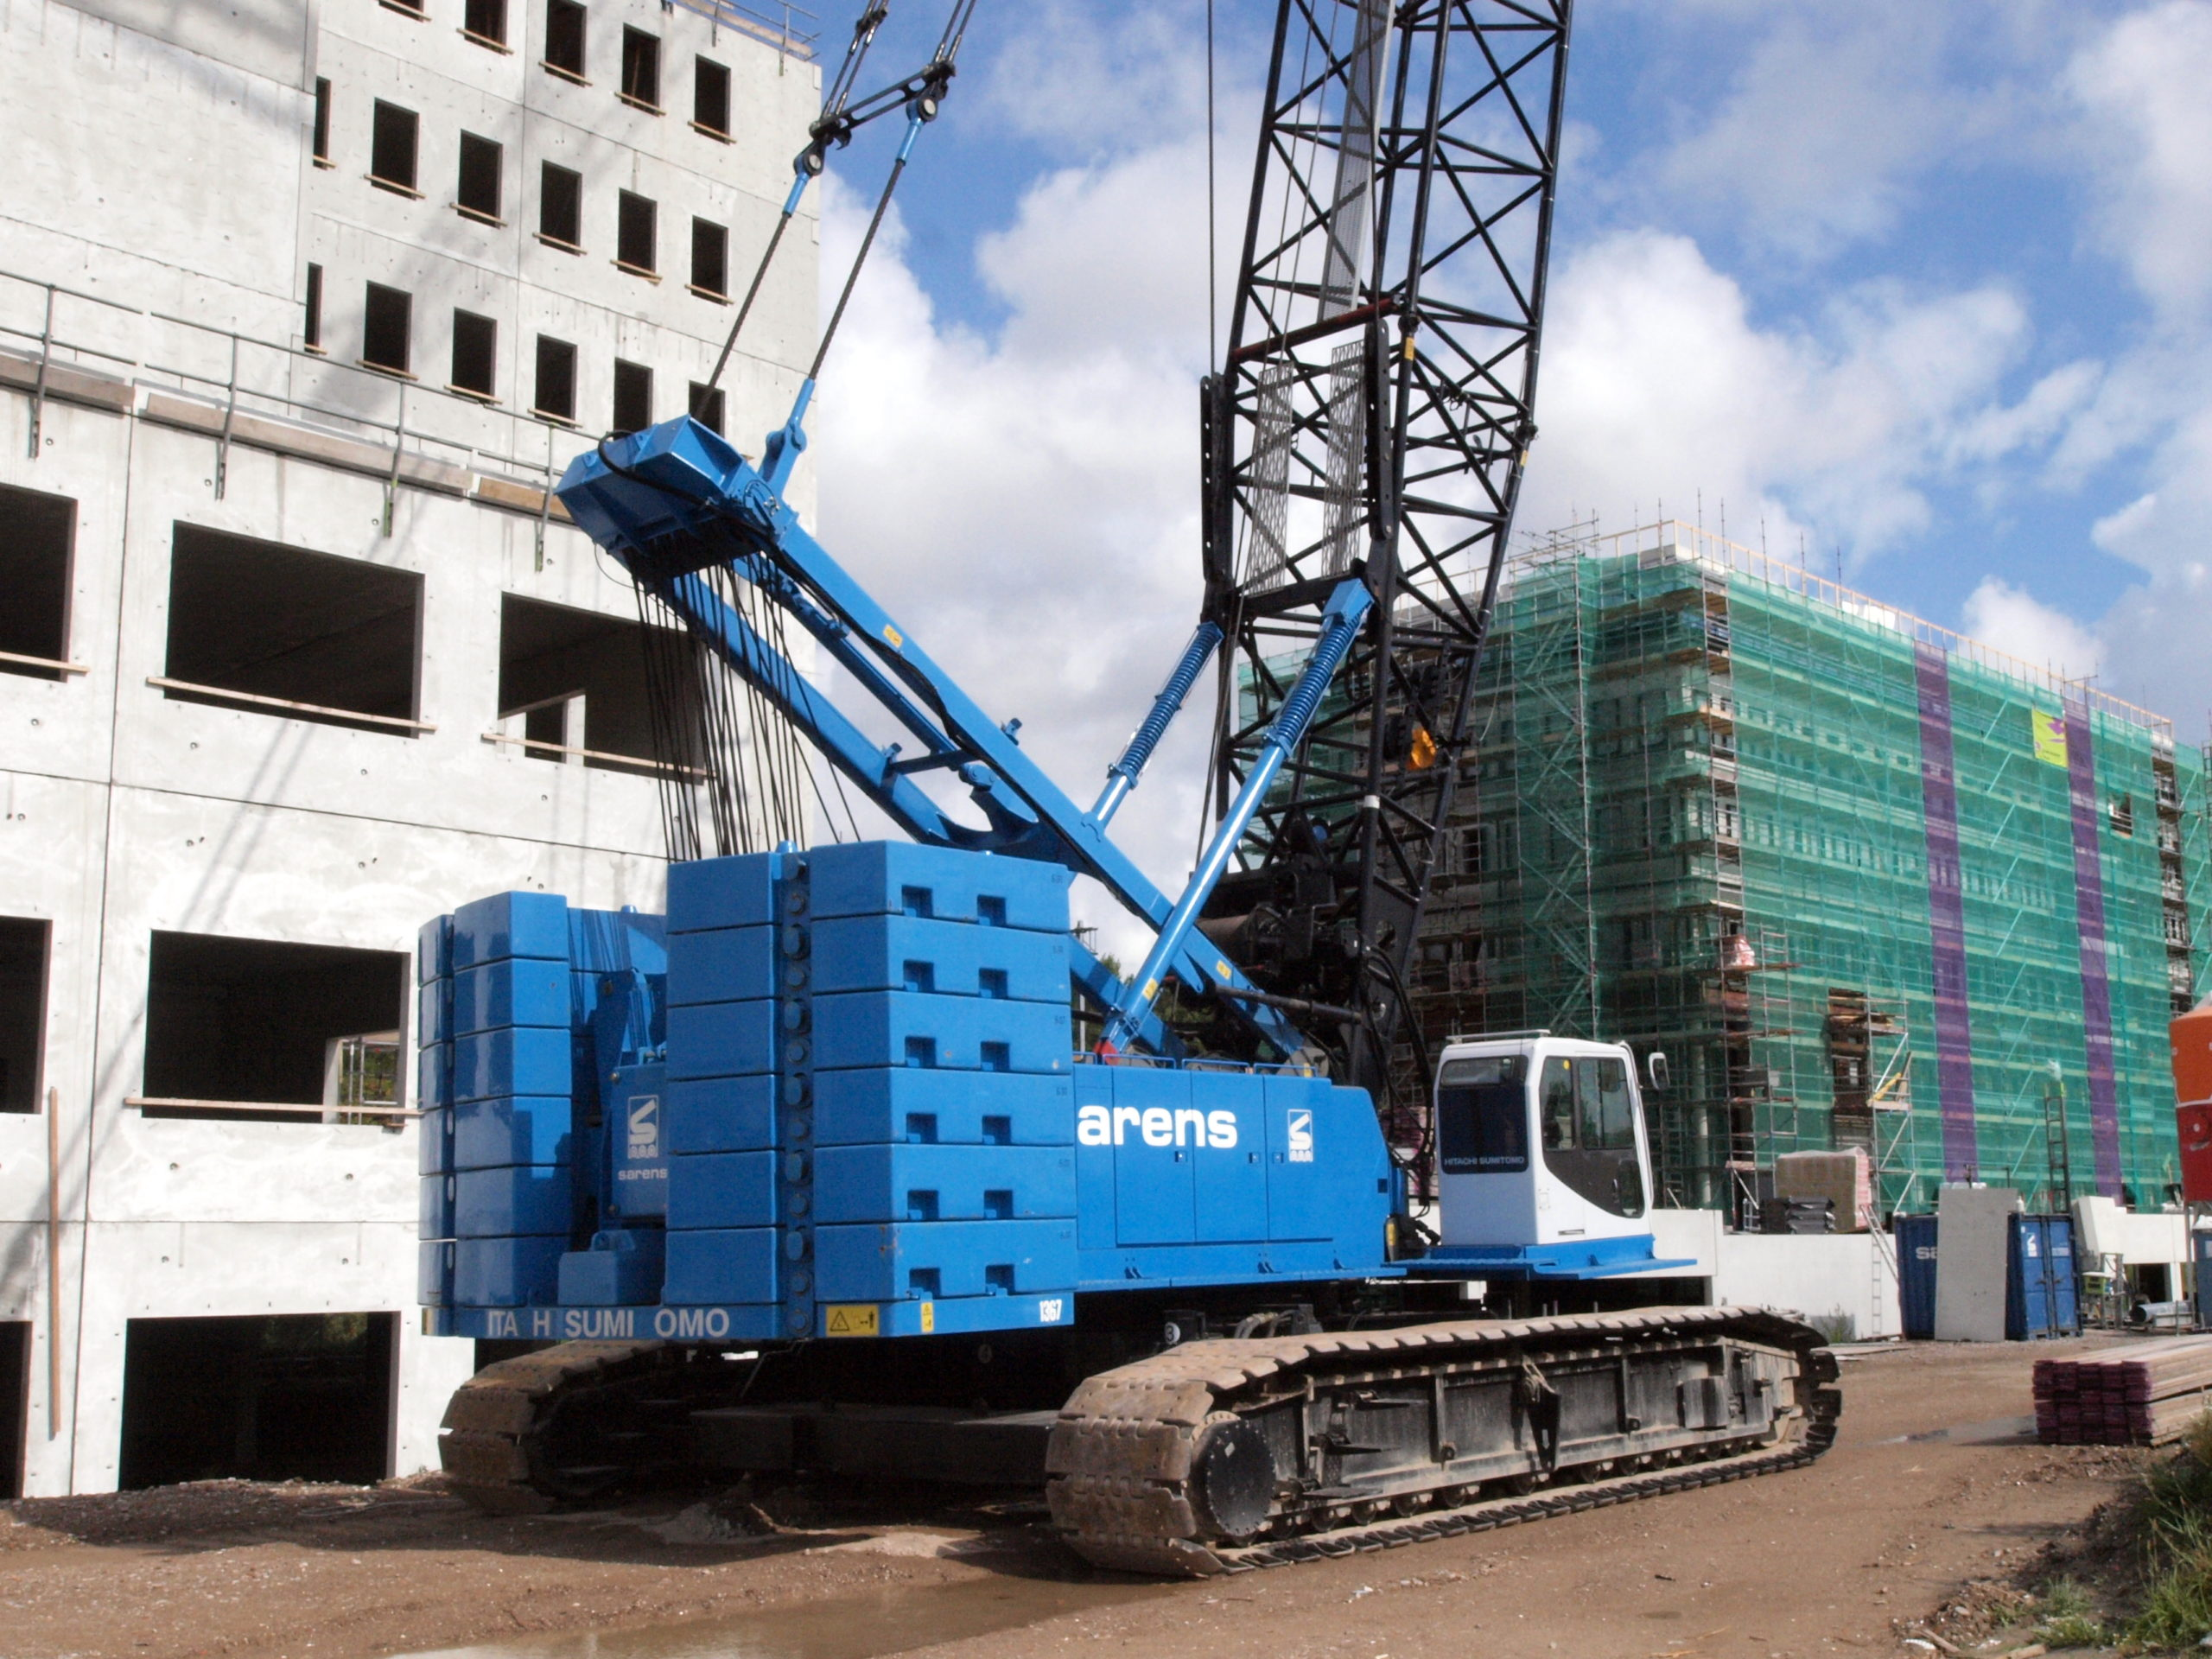 Things To Know About Hitachi Sumitomo!